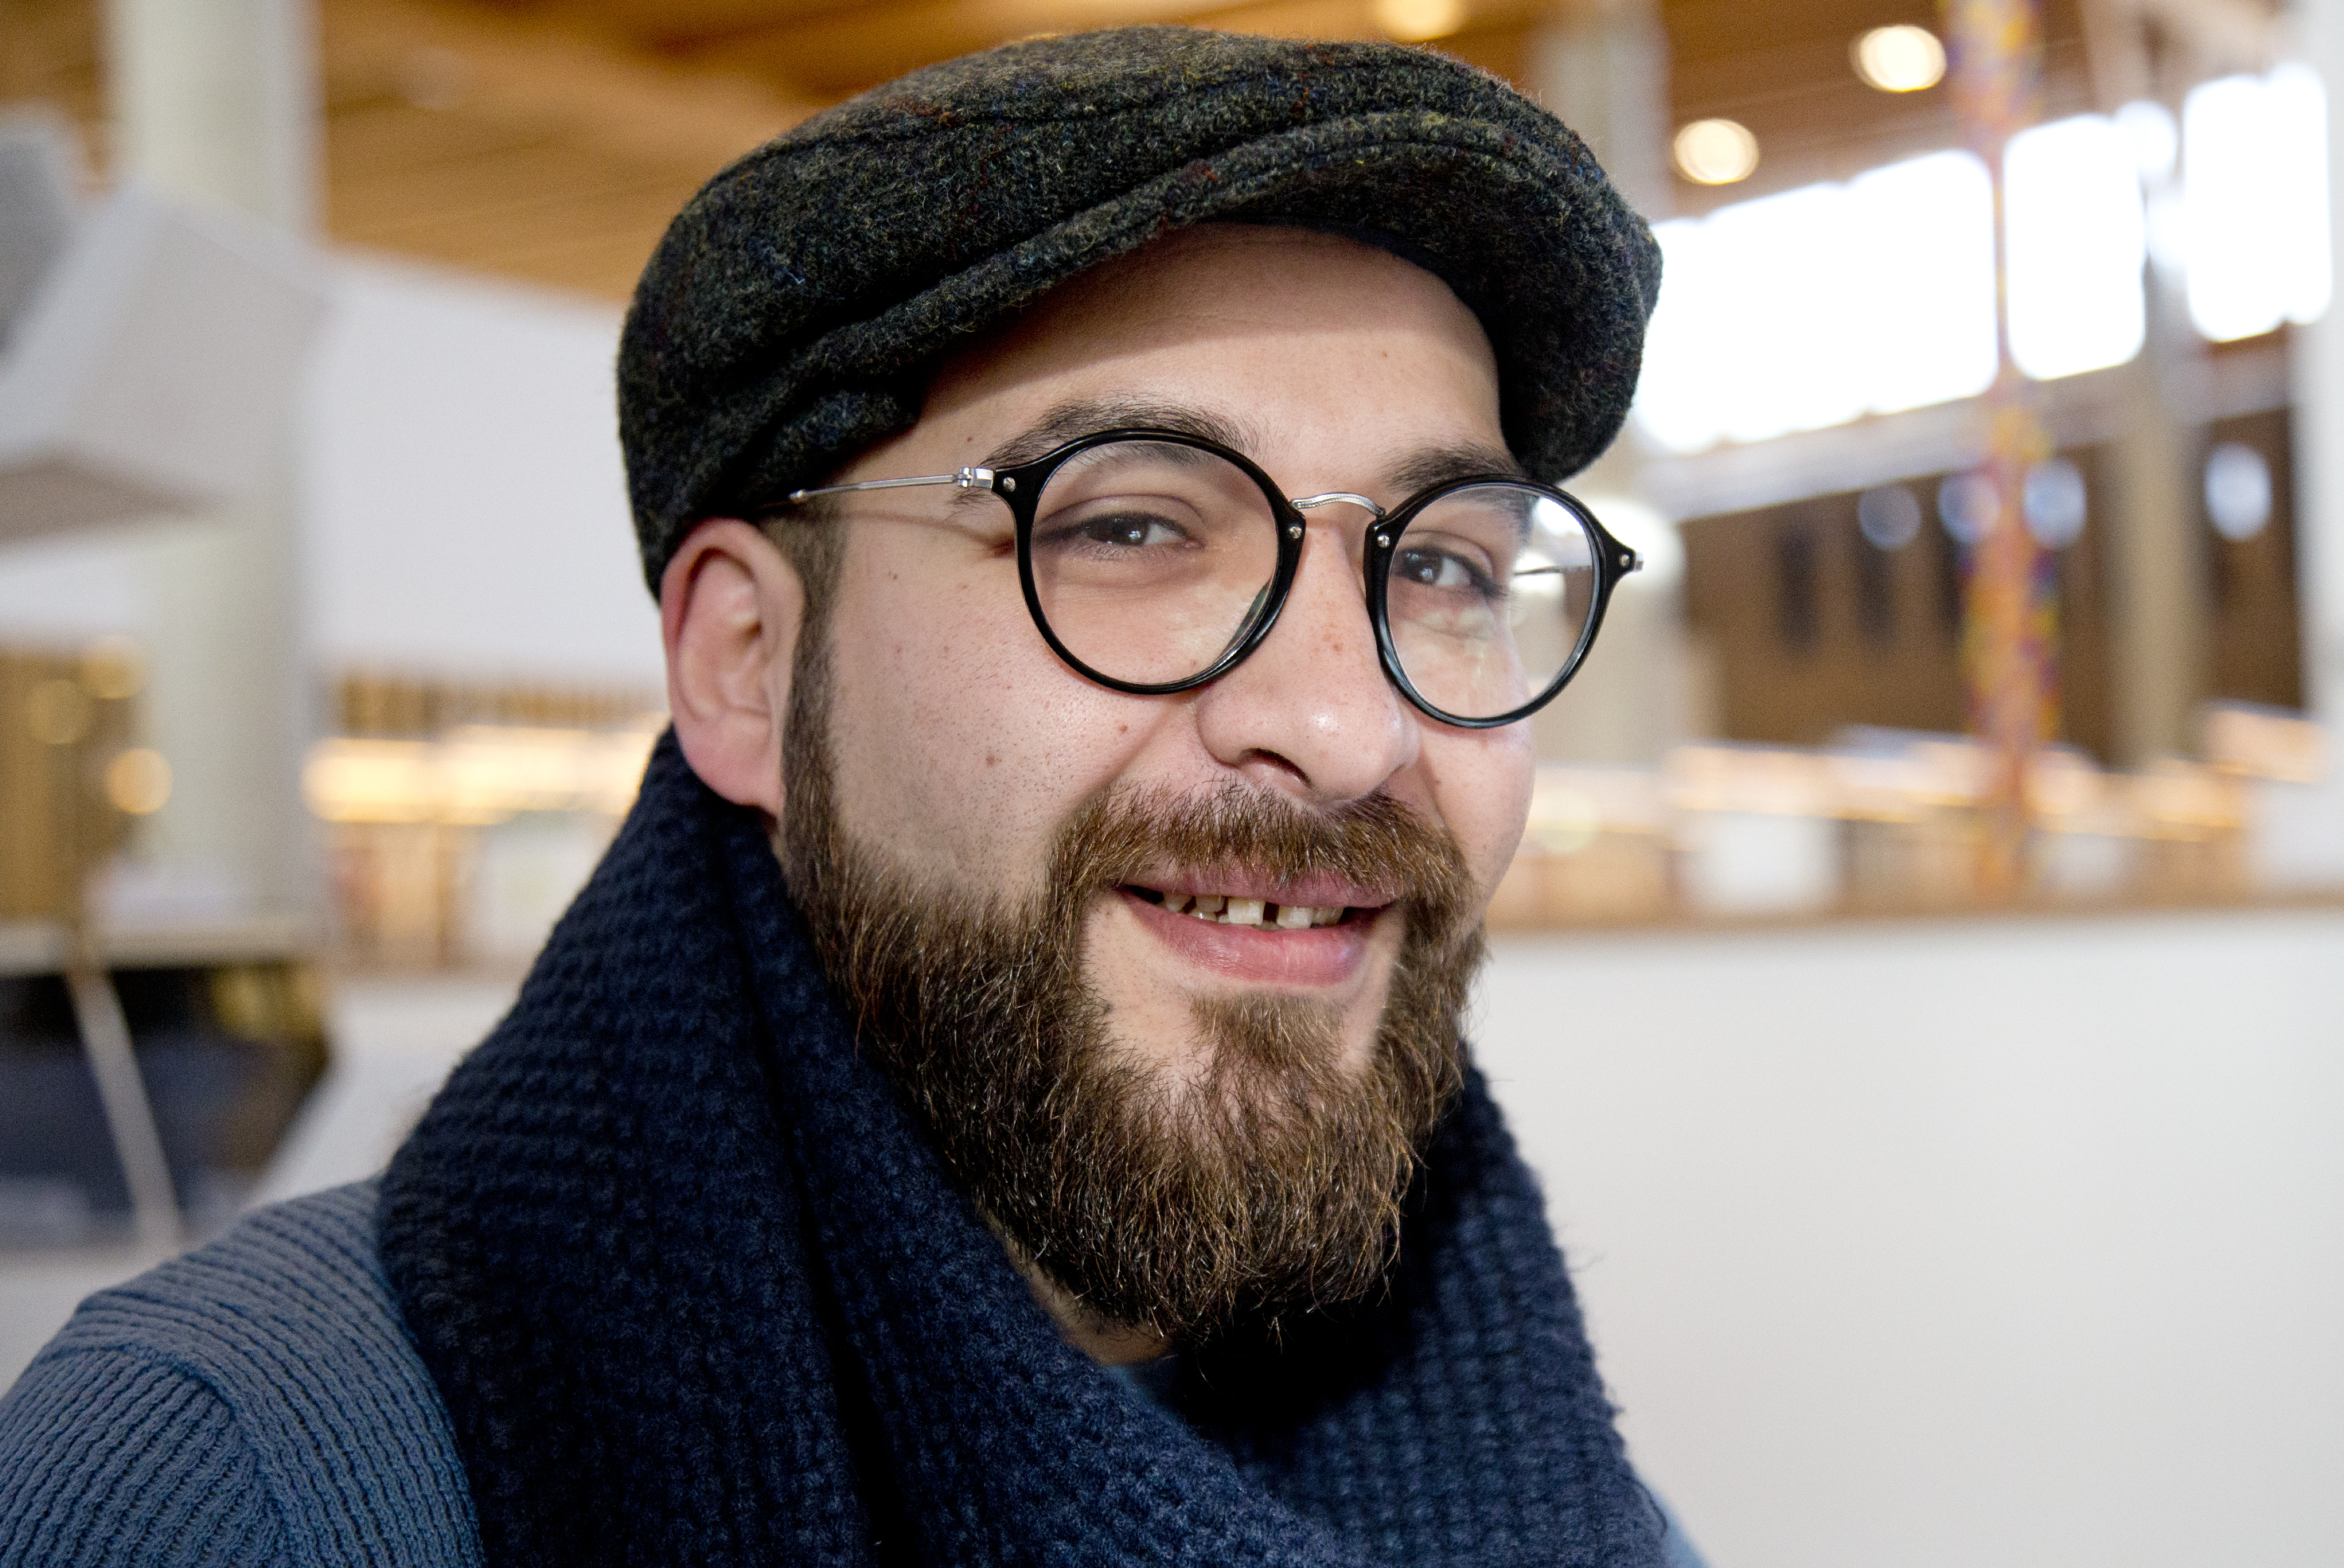 Housam Al-Mosilli, Syrian journalist, poet and translator. ICORN writer in residence in Linköping, Sweden. Photo.